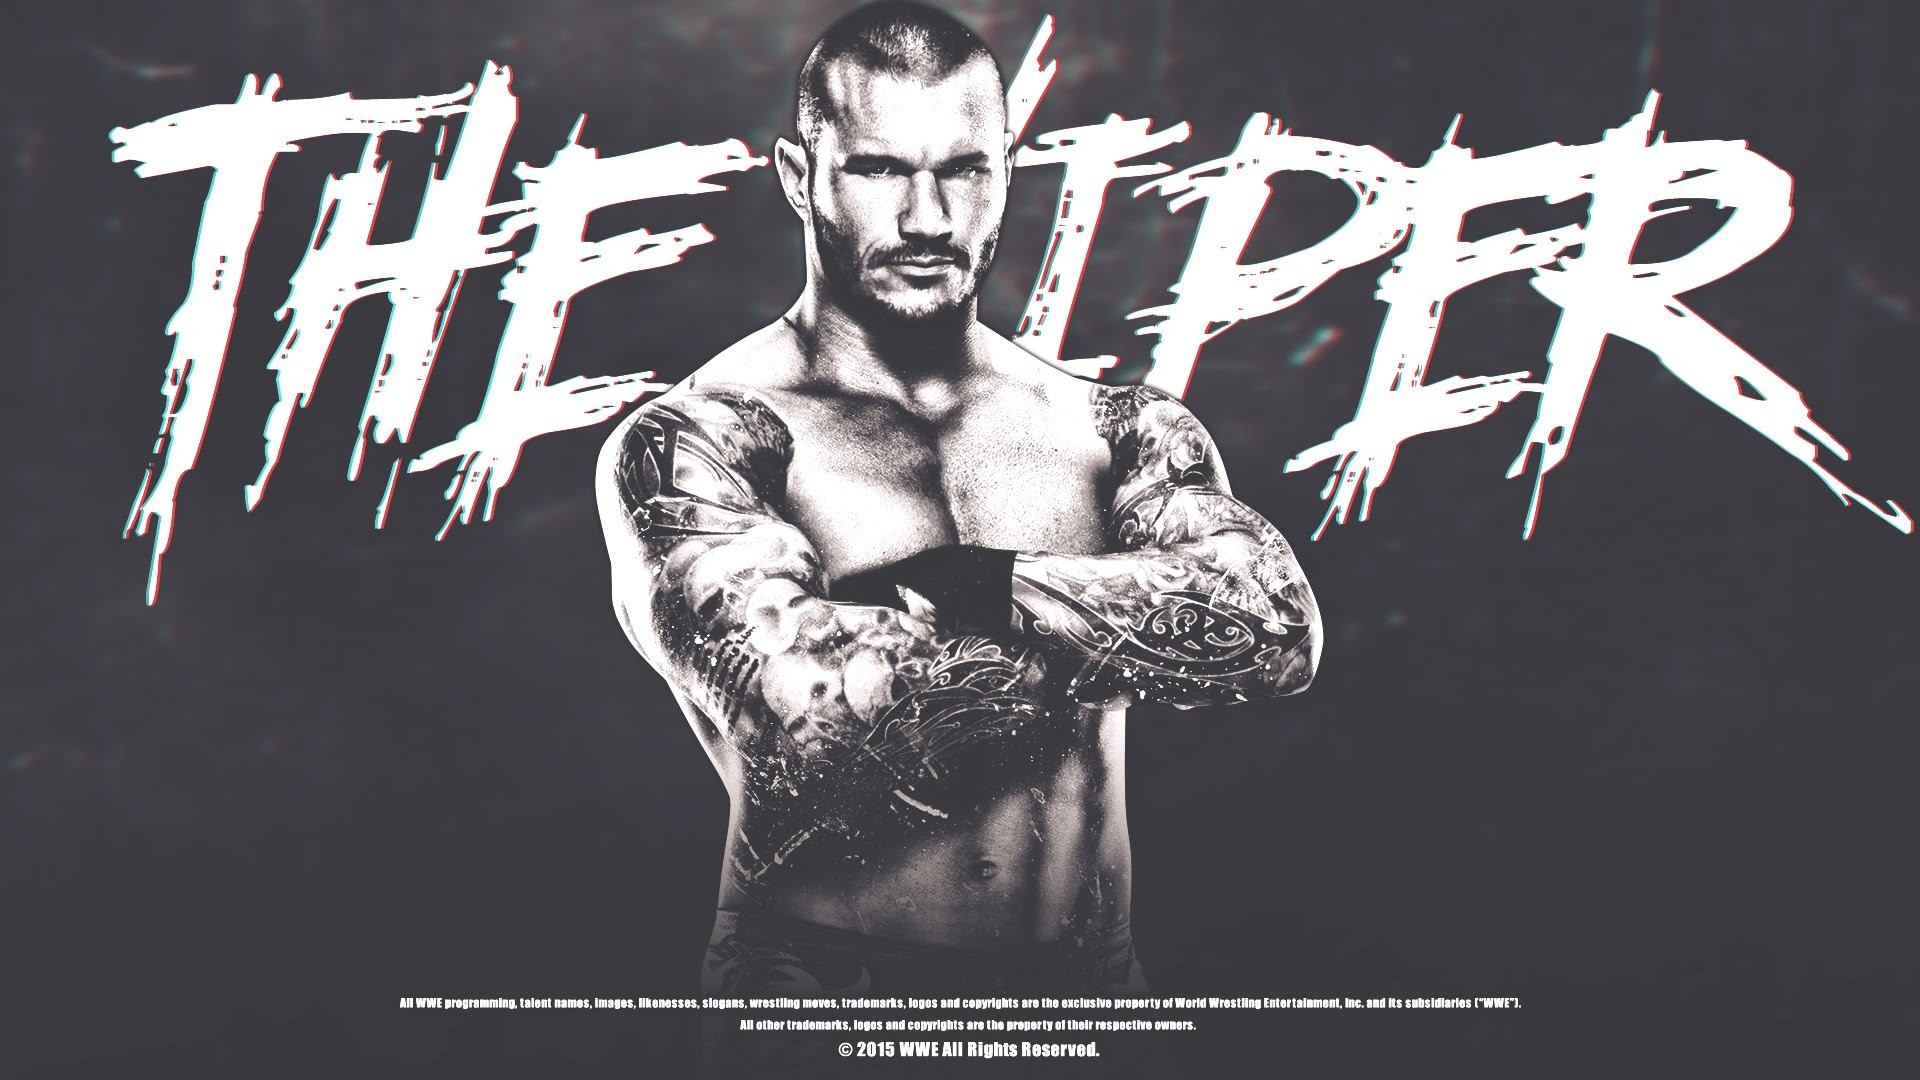 John Cena 1920x1200 Hd Wallpaper Randy Orton Images Wallpapers 60 Images